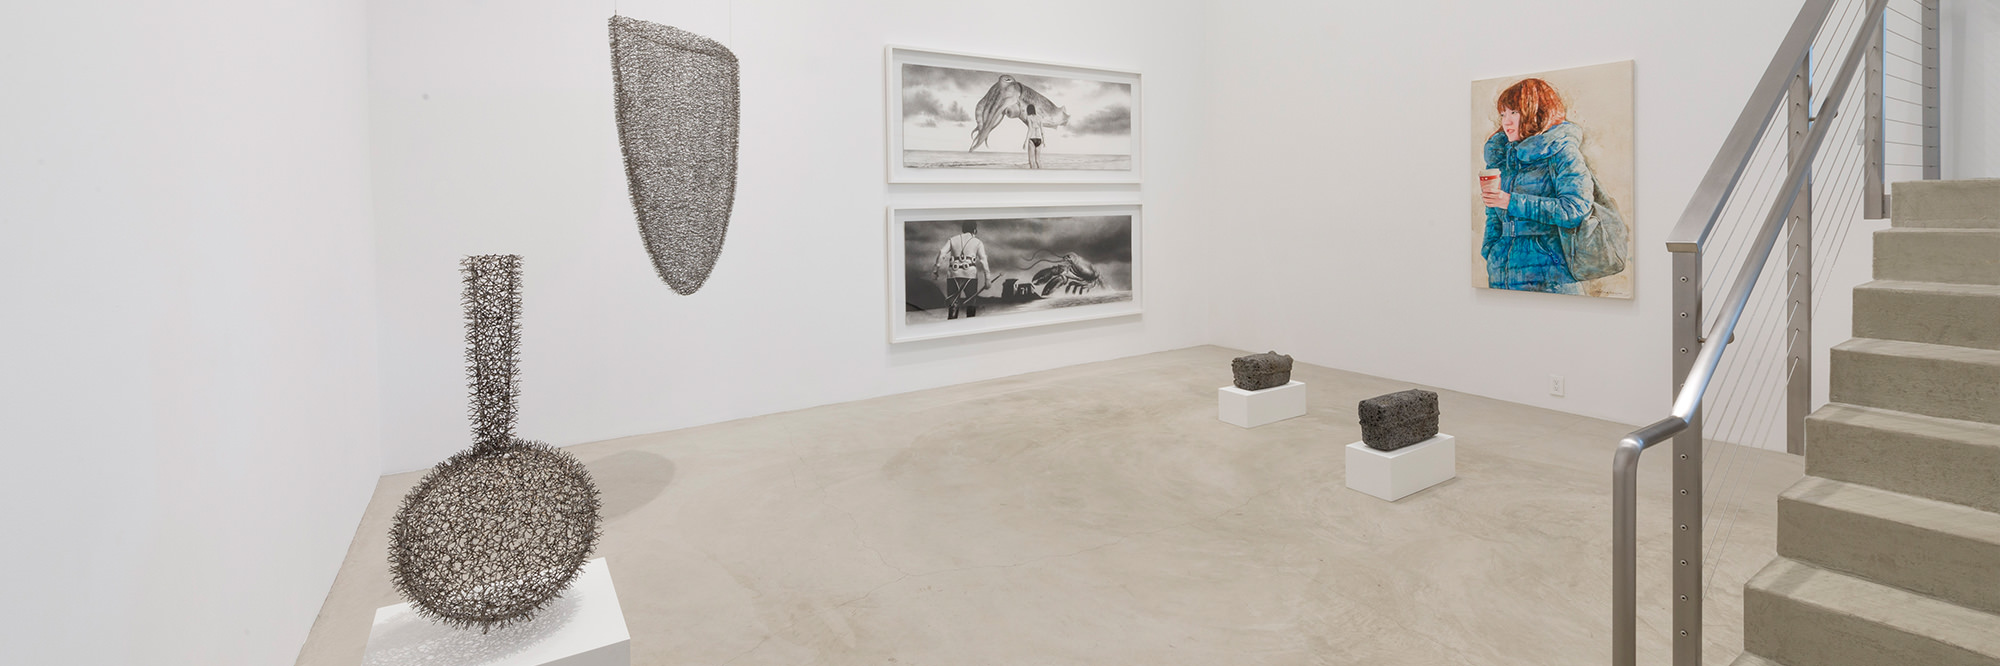 HANDS ACROSS THE WATER   | Ahmad Zakii Anwar, Kow Leong Kiang, Heri Dono, Choi Tae Hoon, Young Jin Han | Part 1: Sep 13 – Oct 4, 2014 & Part 2: Oct 11 – 31, 2014 |  press release